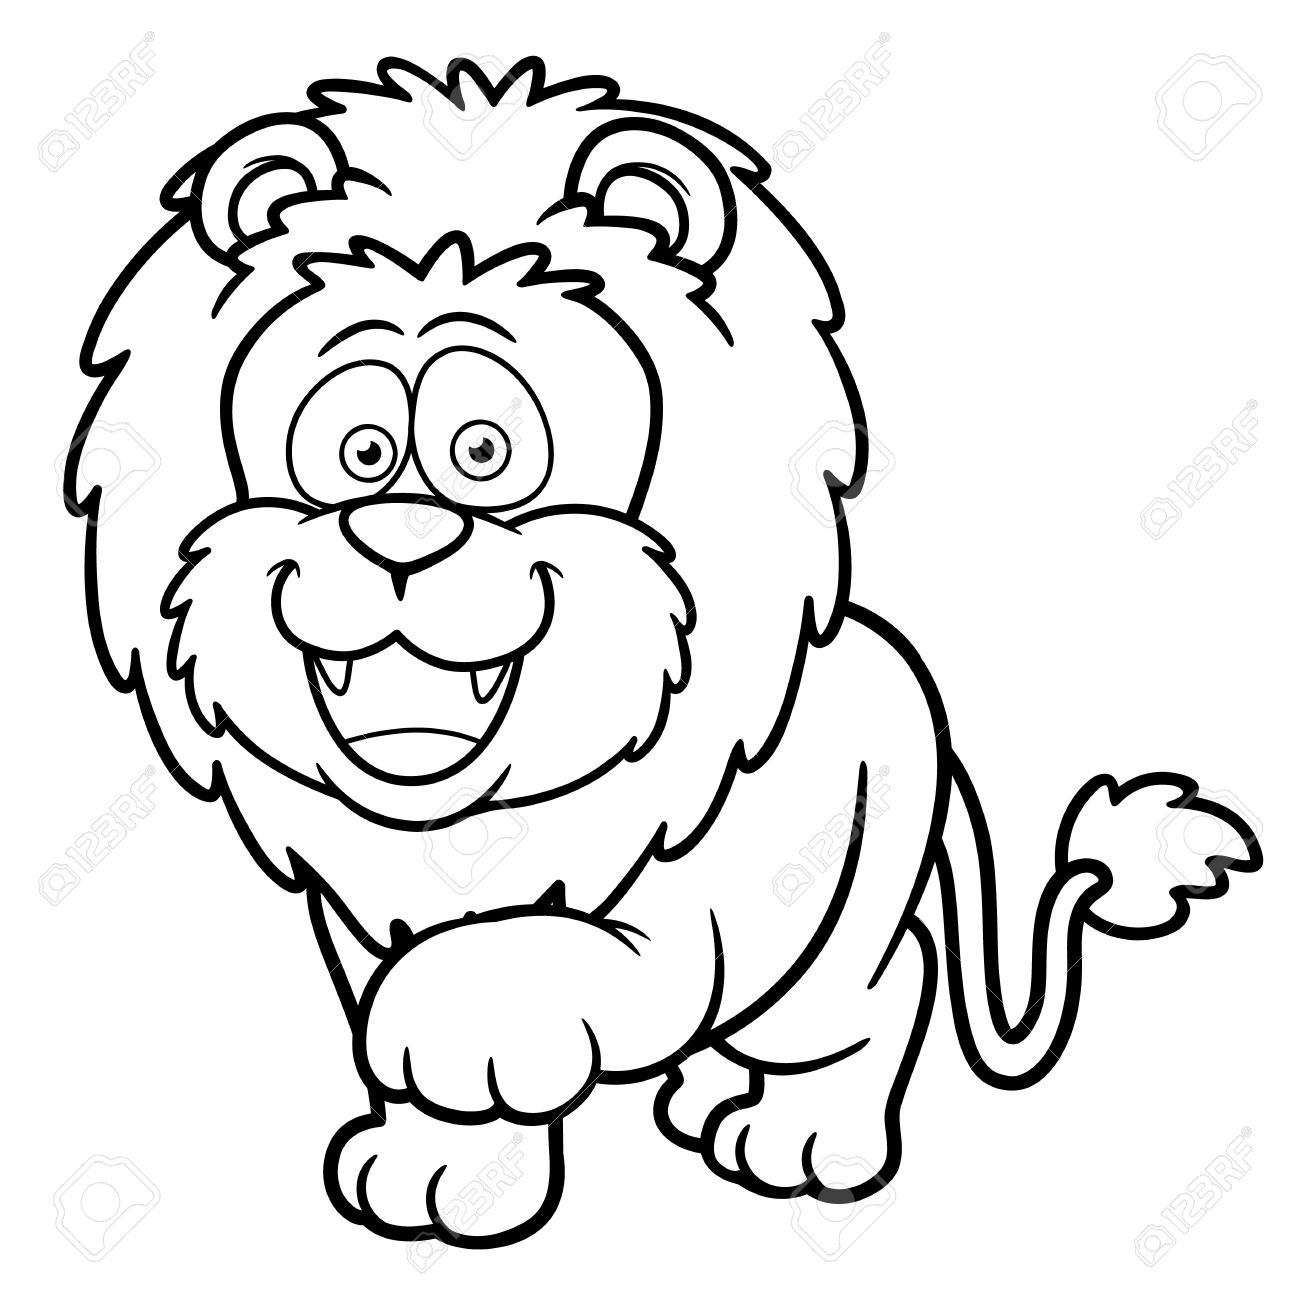 Lion guard coloring book - Vector Illustration Of Cartoon Lion Coloring Book Royalty Free